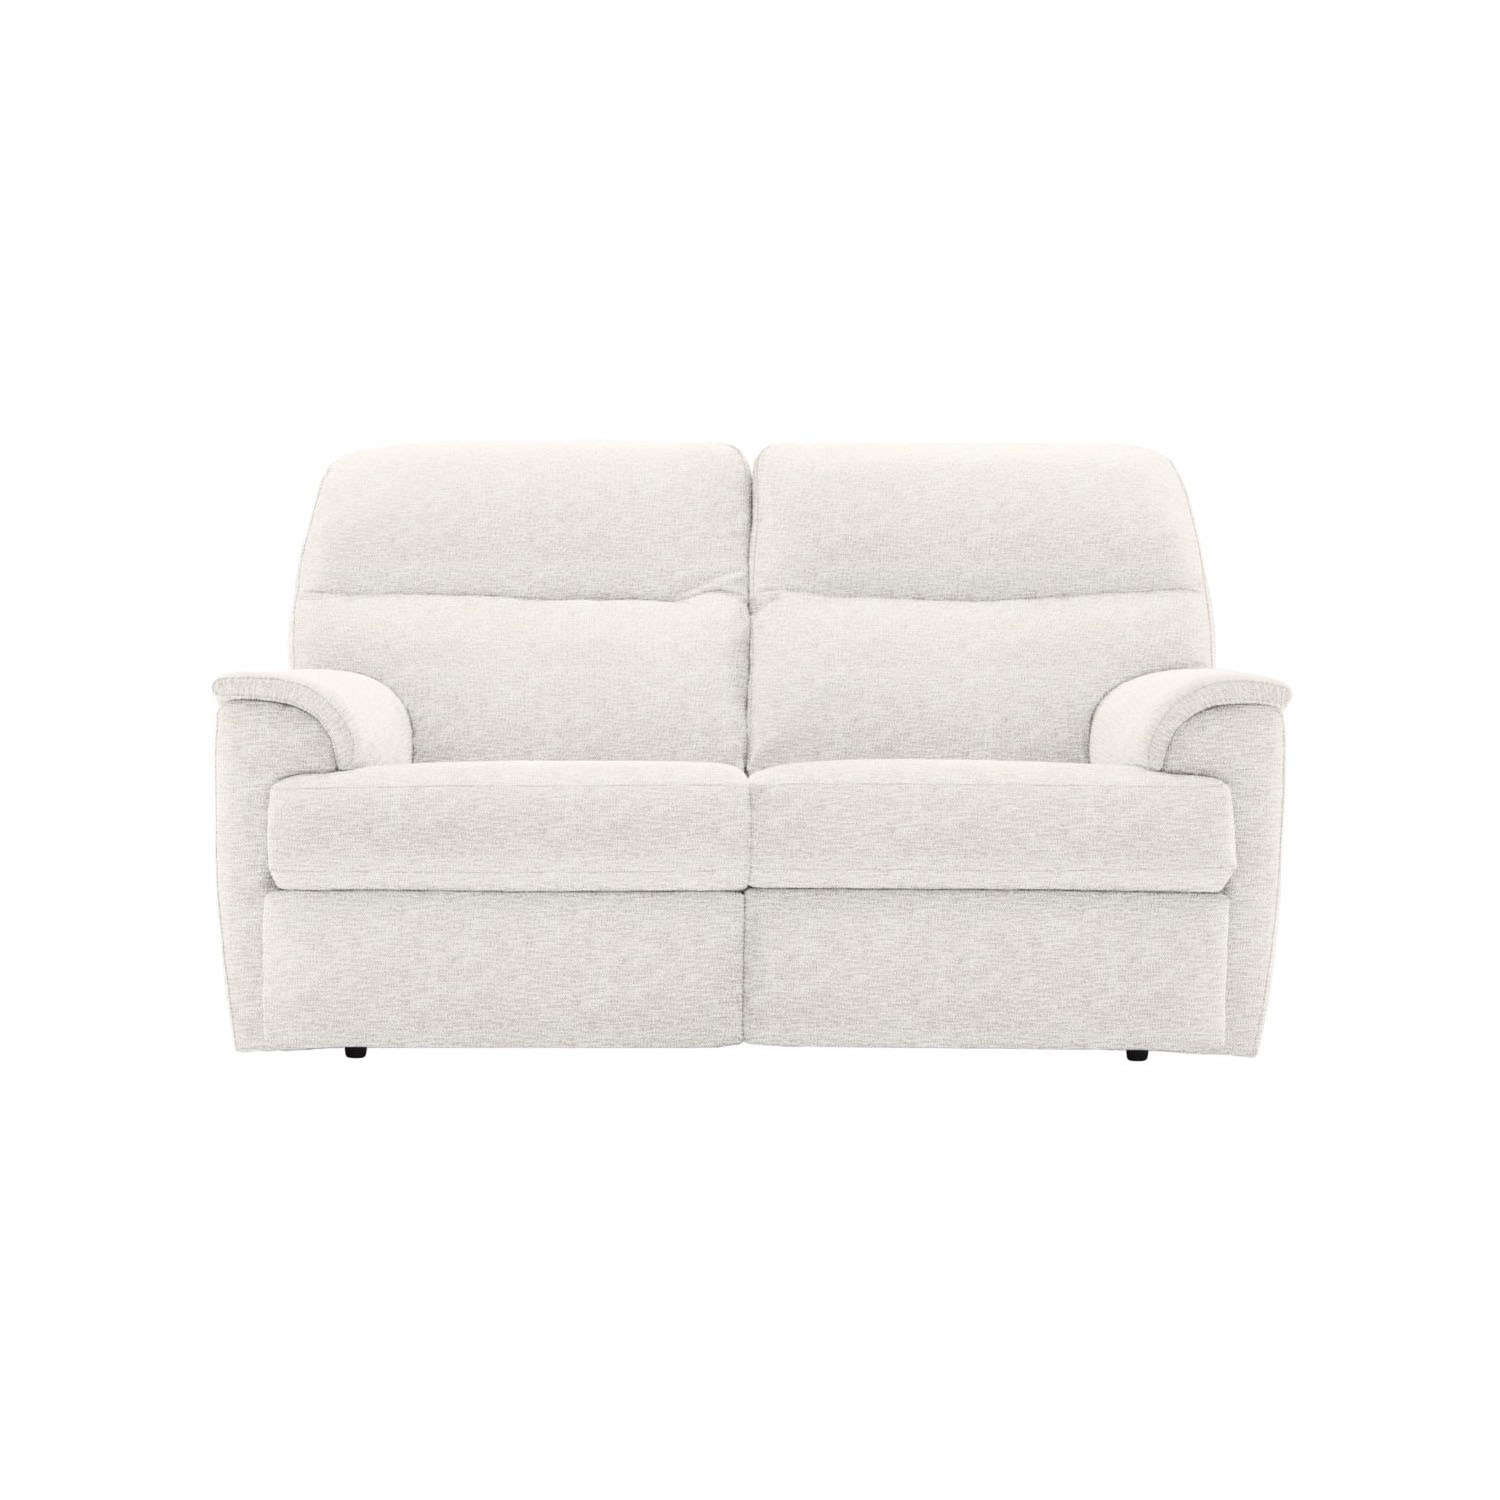 watson sofa table bed single chair g plan two seater